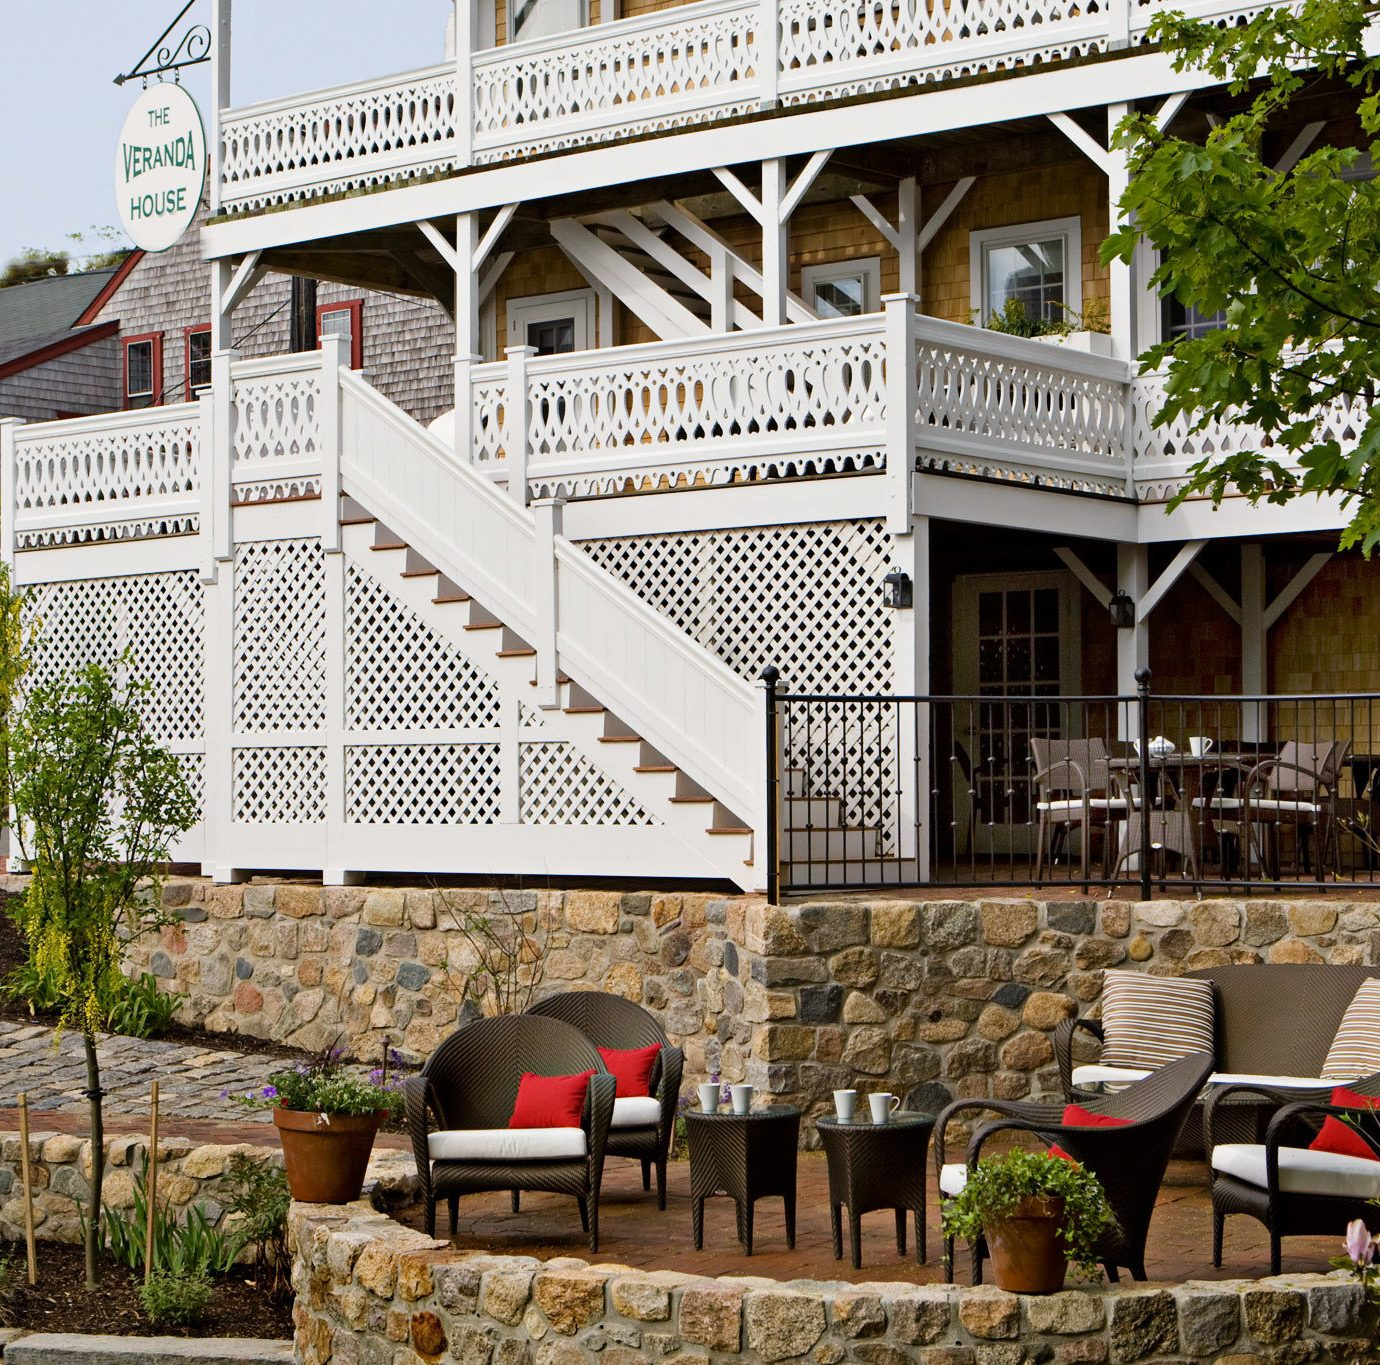 B&B Boutique Exterior Grounds Inn tree building house Town home residential area Resort cottage Village